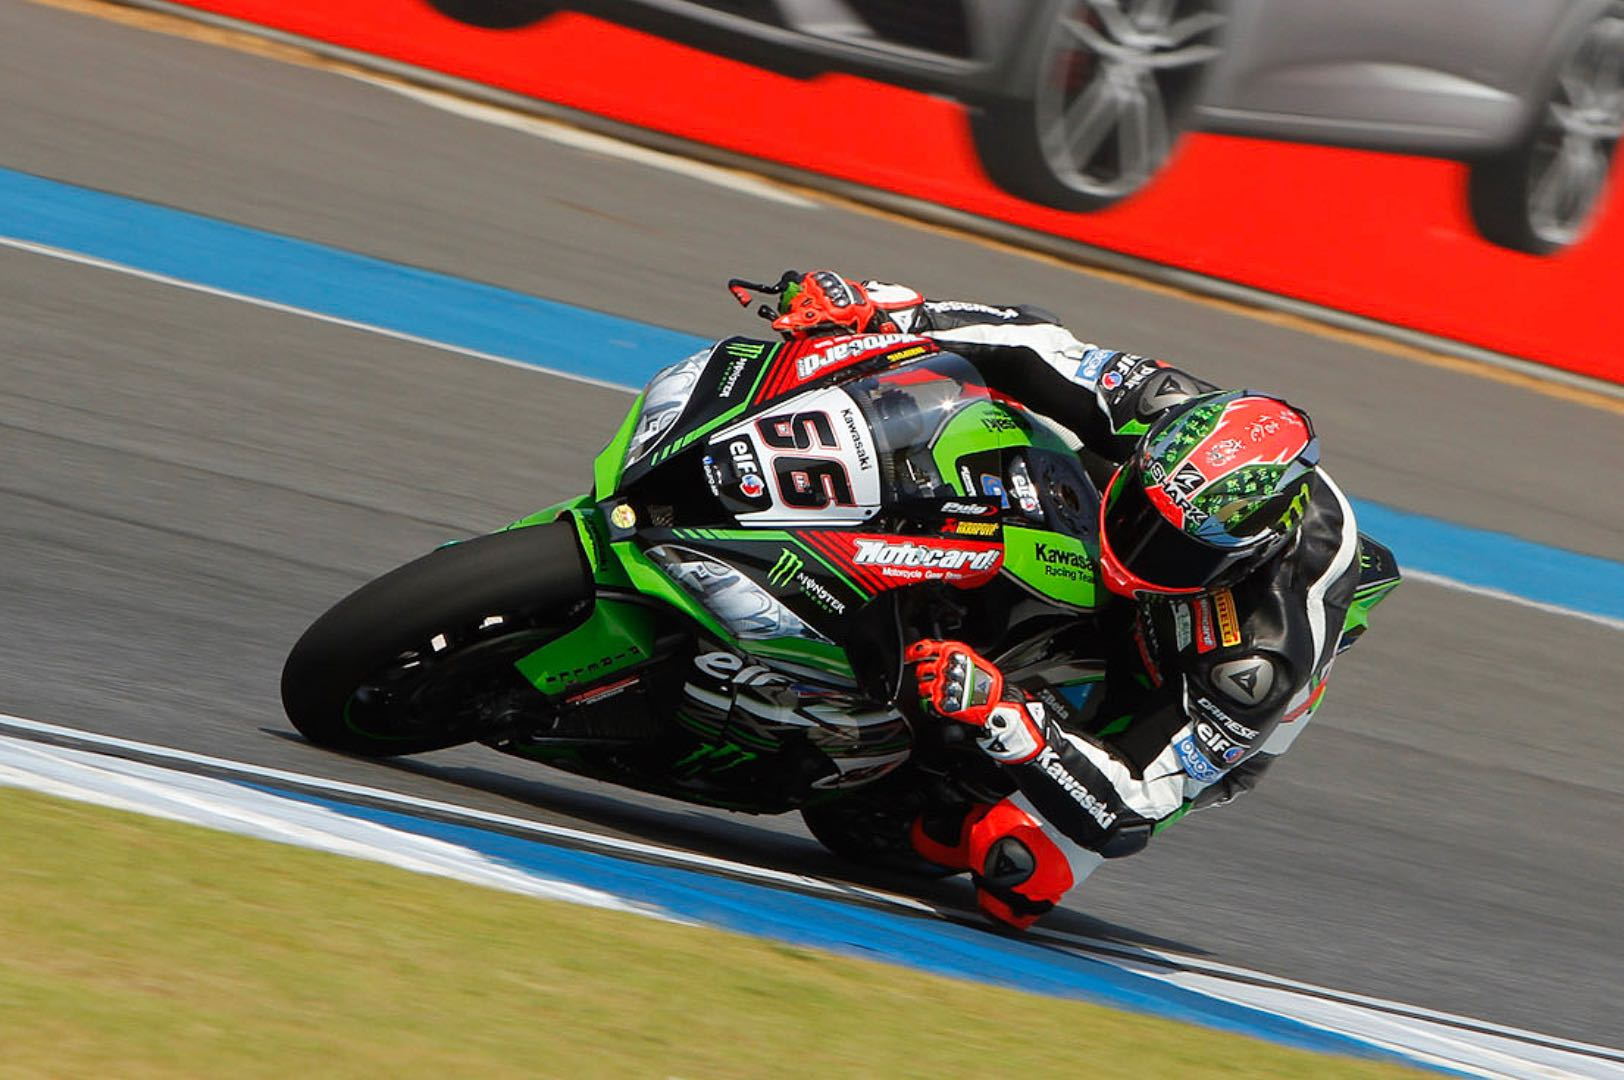 2017 Assen World Superbike Preview: Kawasaki's Tom Sykes